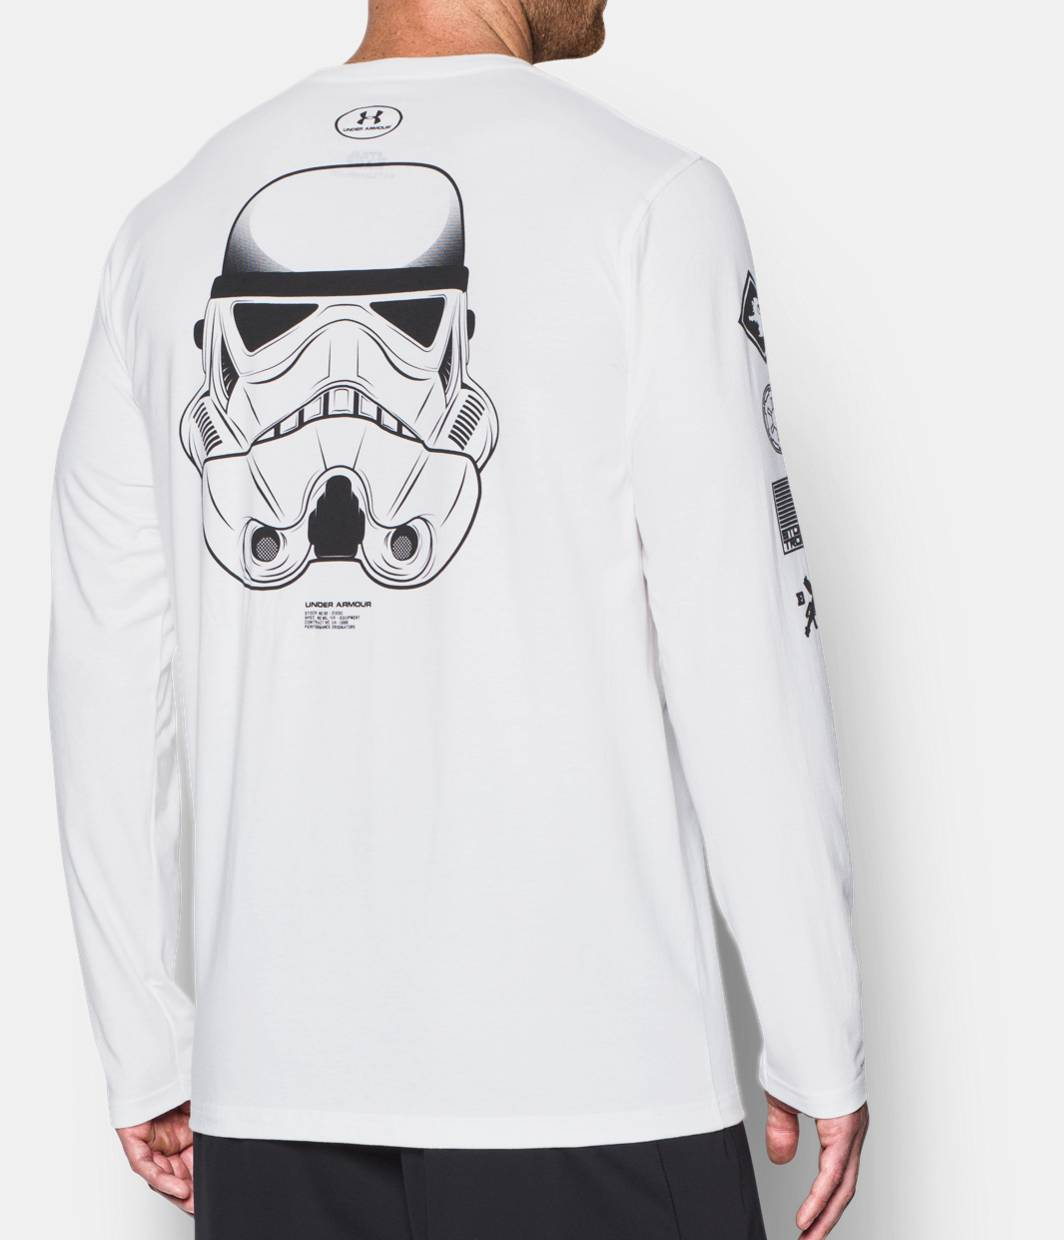 Looking For Online Boys VII Stormtrooper Helmet White Long Sleeve Sweatshirt Star Wars Big Discount Cheap Online Buy Cheap 2018 Unisex mZacBPvhB1